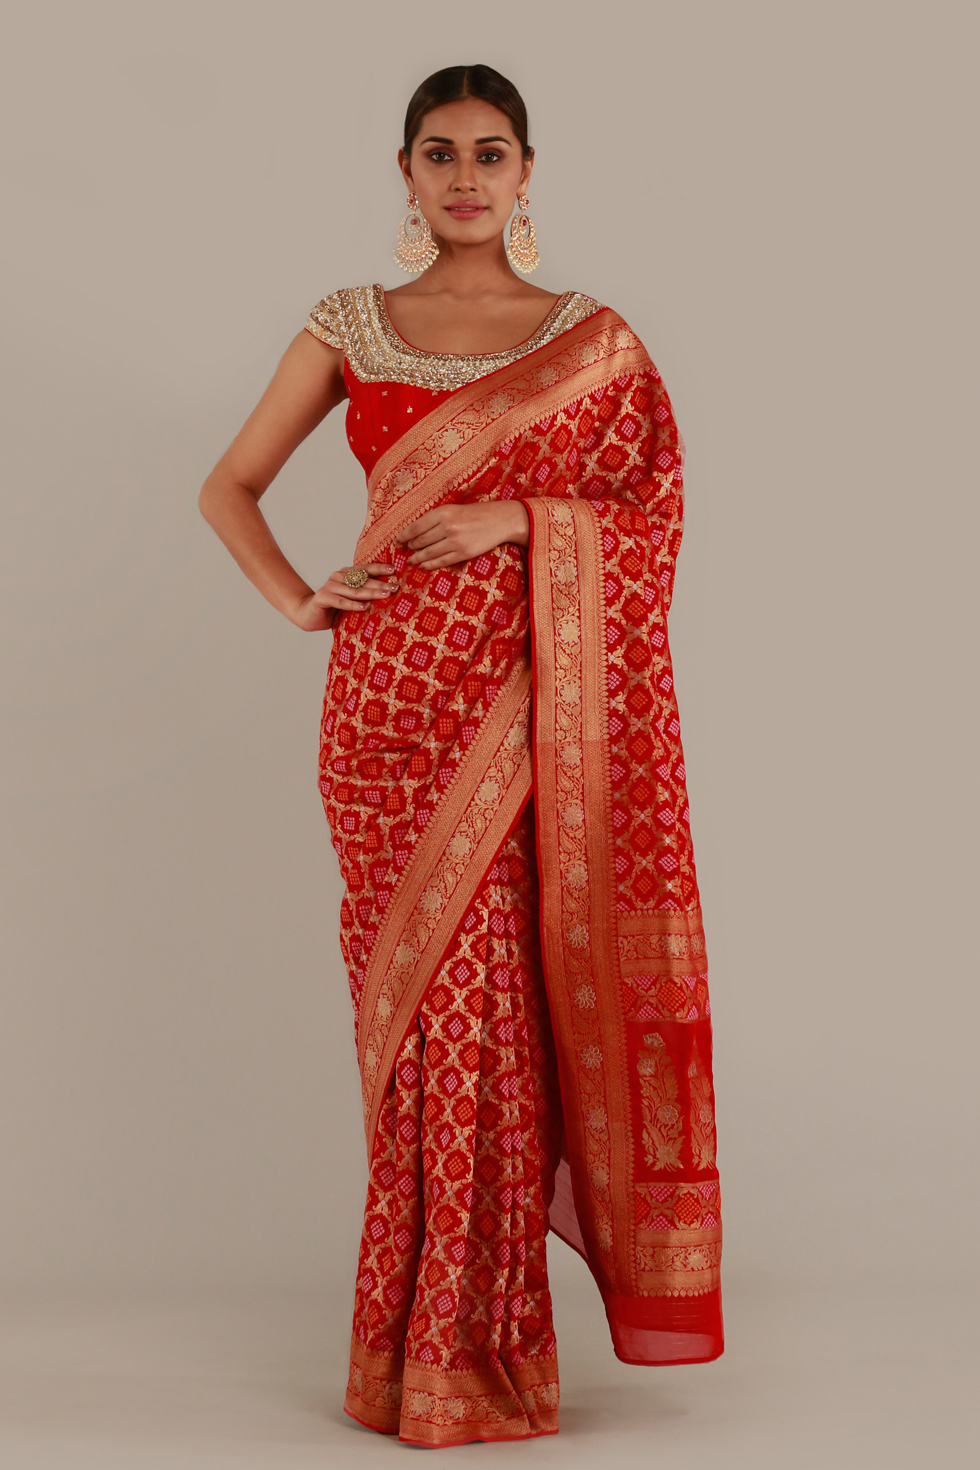 Ruby red and gold classic Banarasi saree with matching choli, gold embroidered neckline and butis